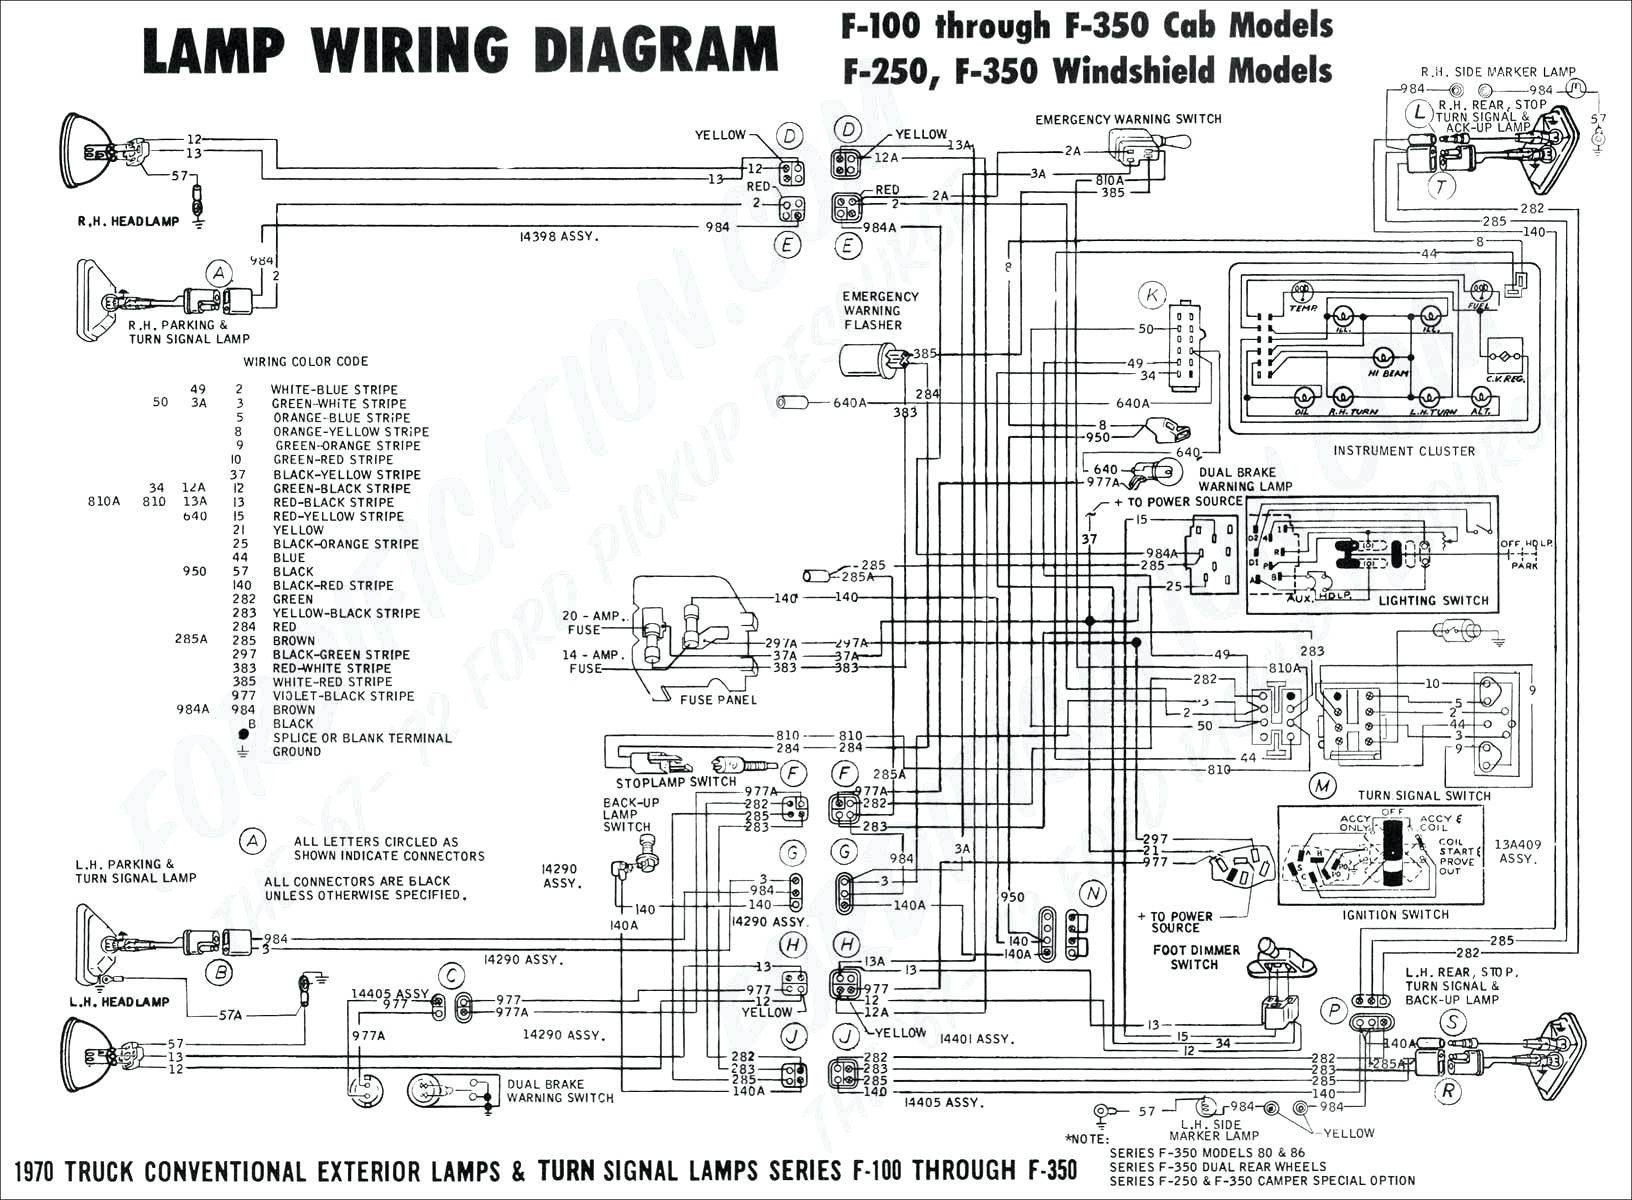 chevy tahoe trailer wiring diagram Collection-2005 Chevy Silverado Trailer Wiring Diagram Ford Resize Gmc Ideas With F250 5 12-e